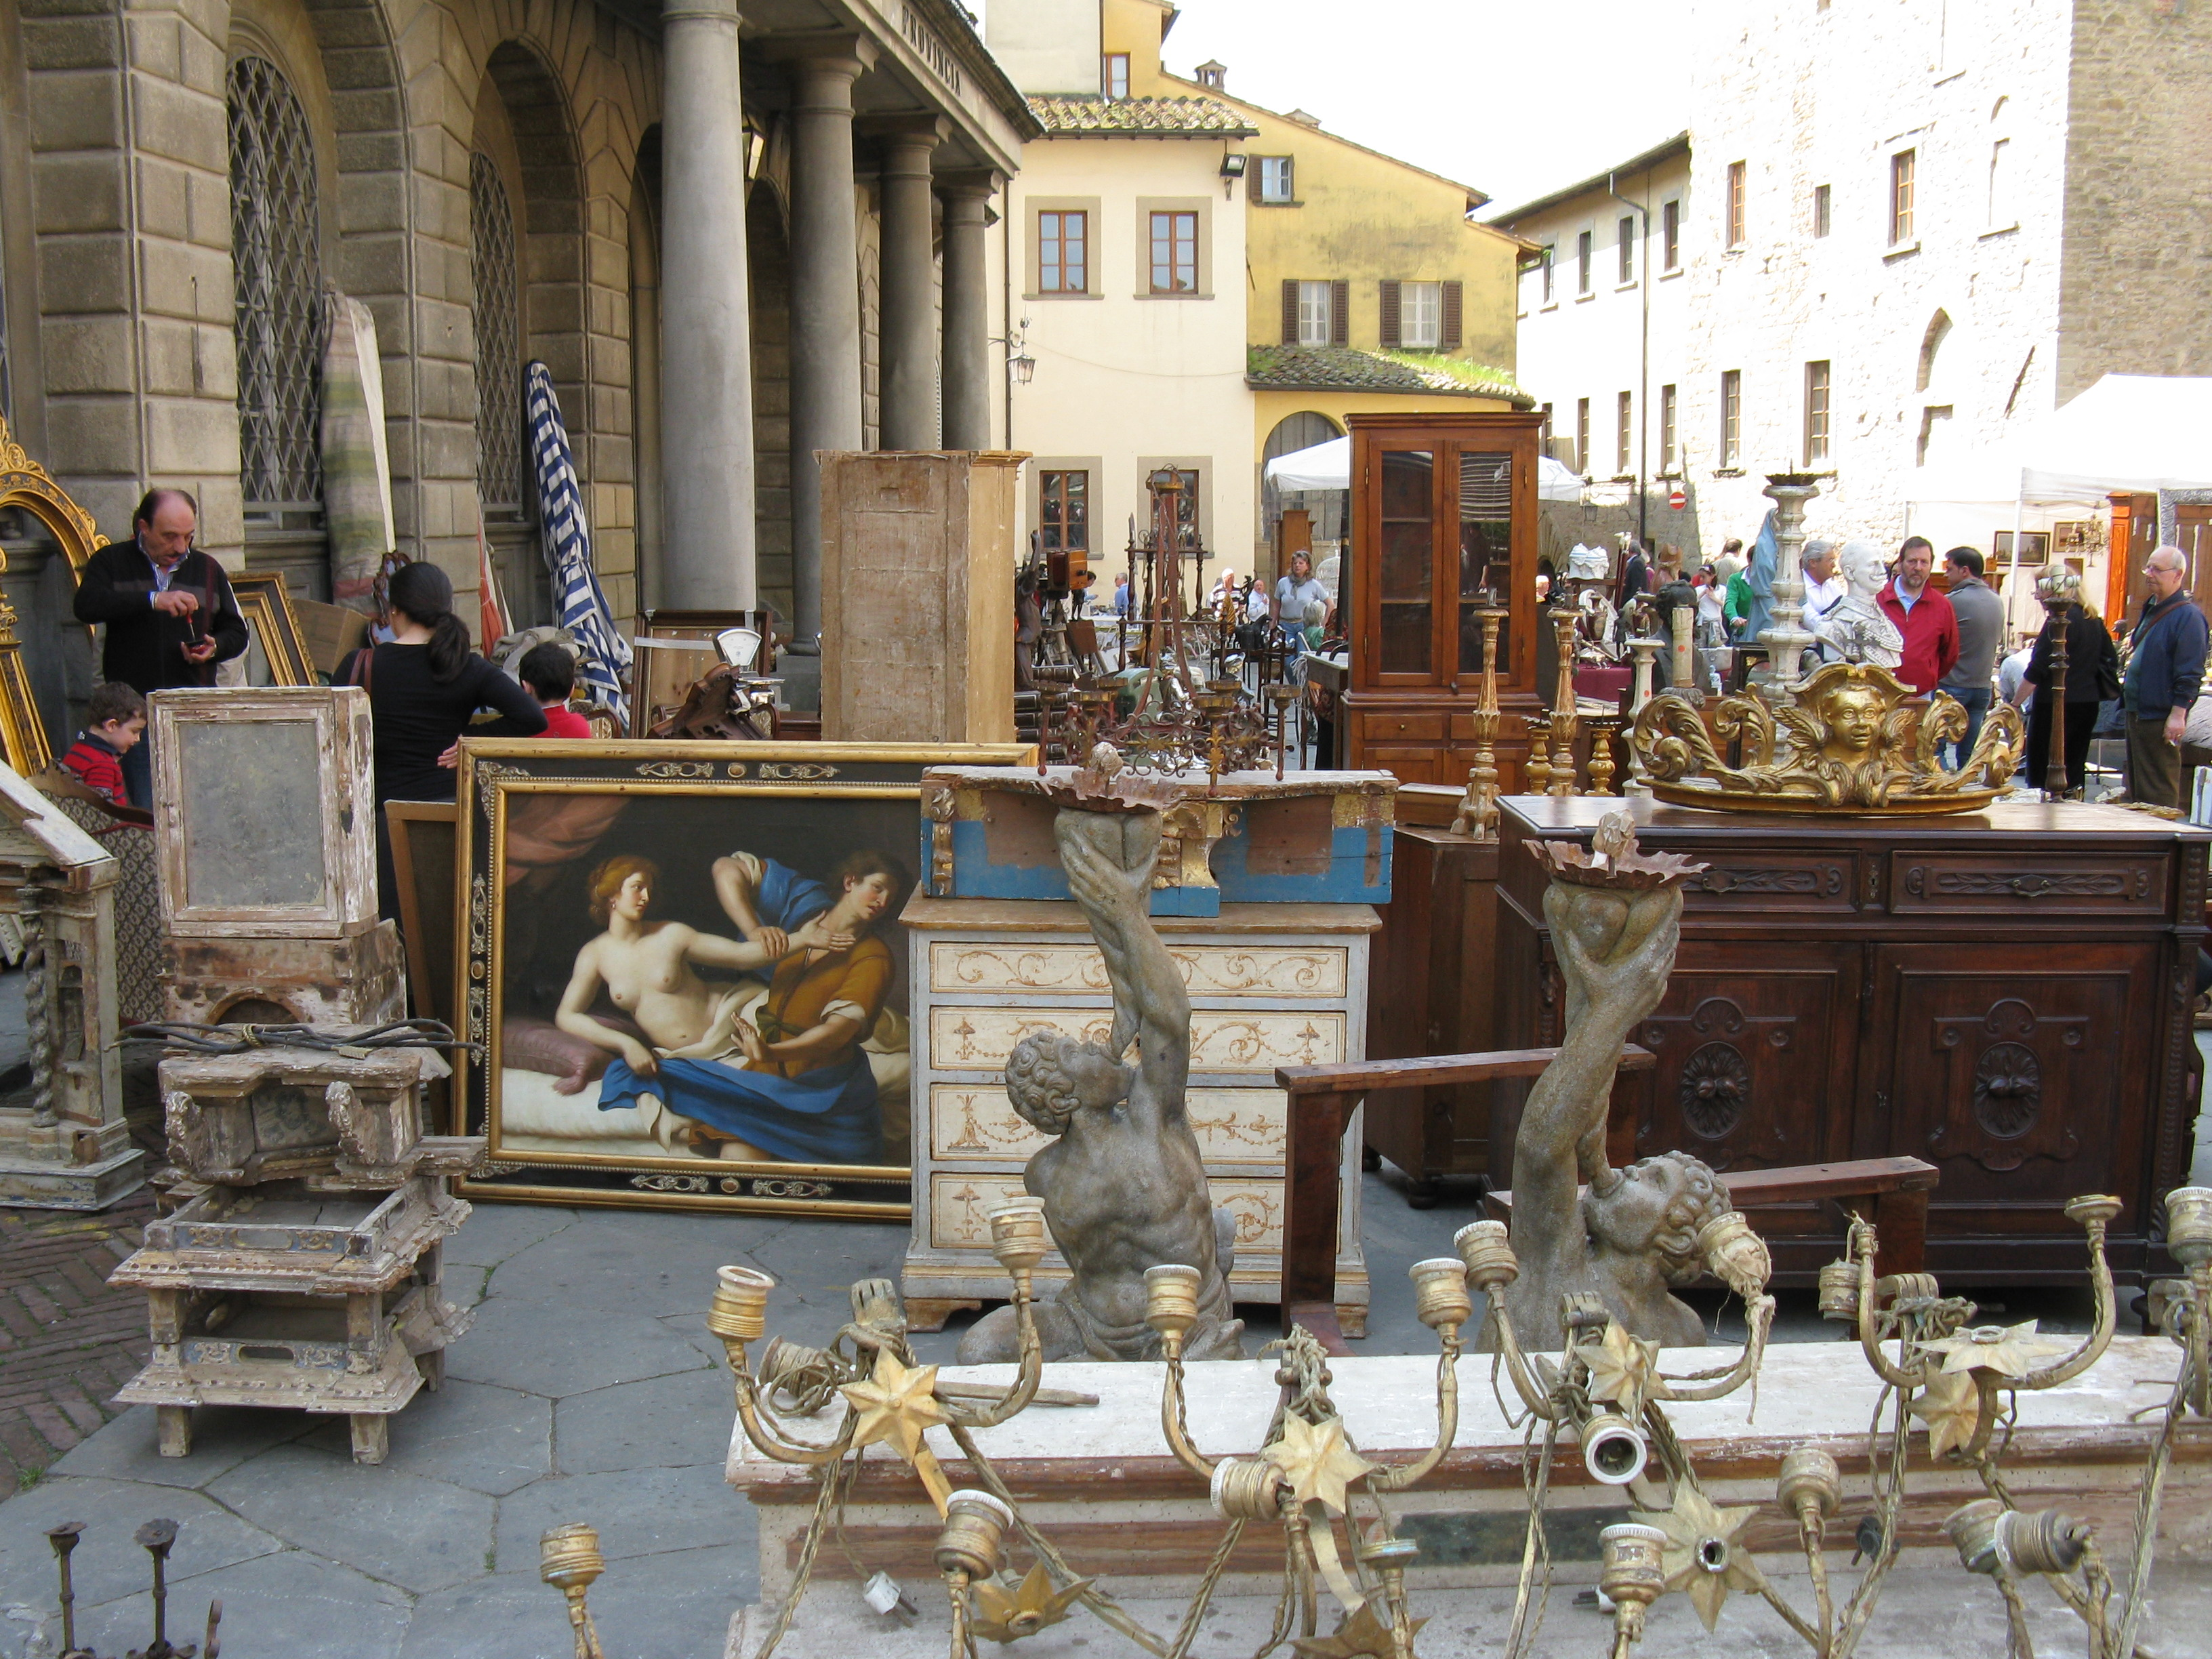 Every piece has a story at the Arezzo Antique Market